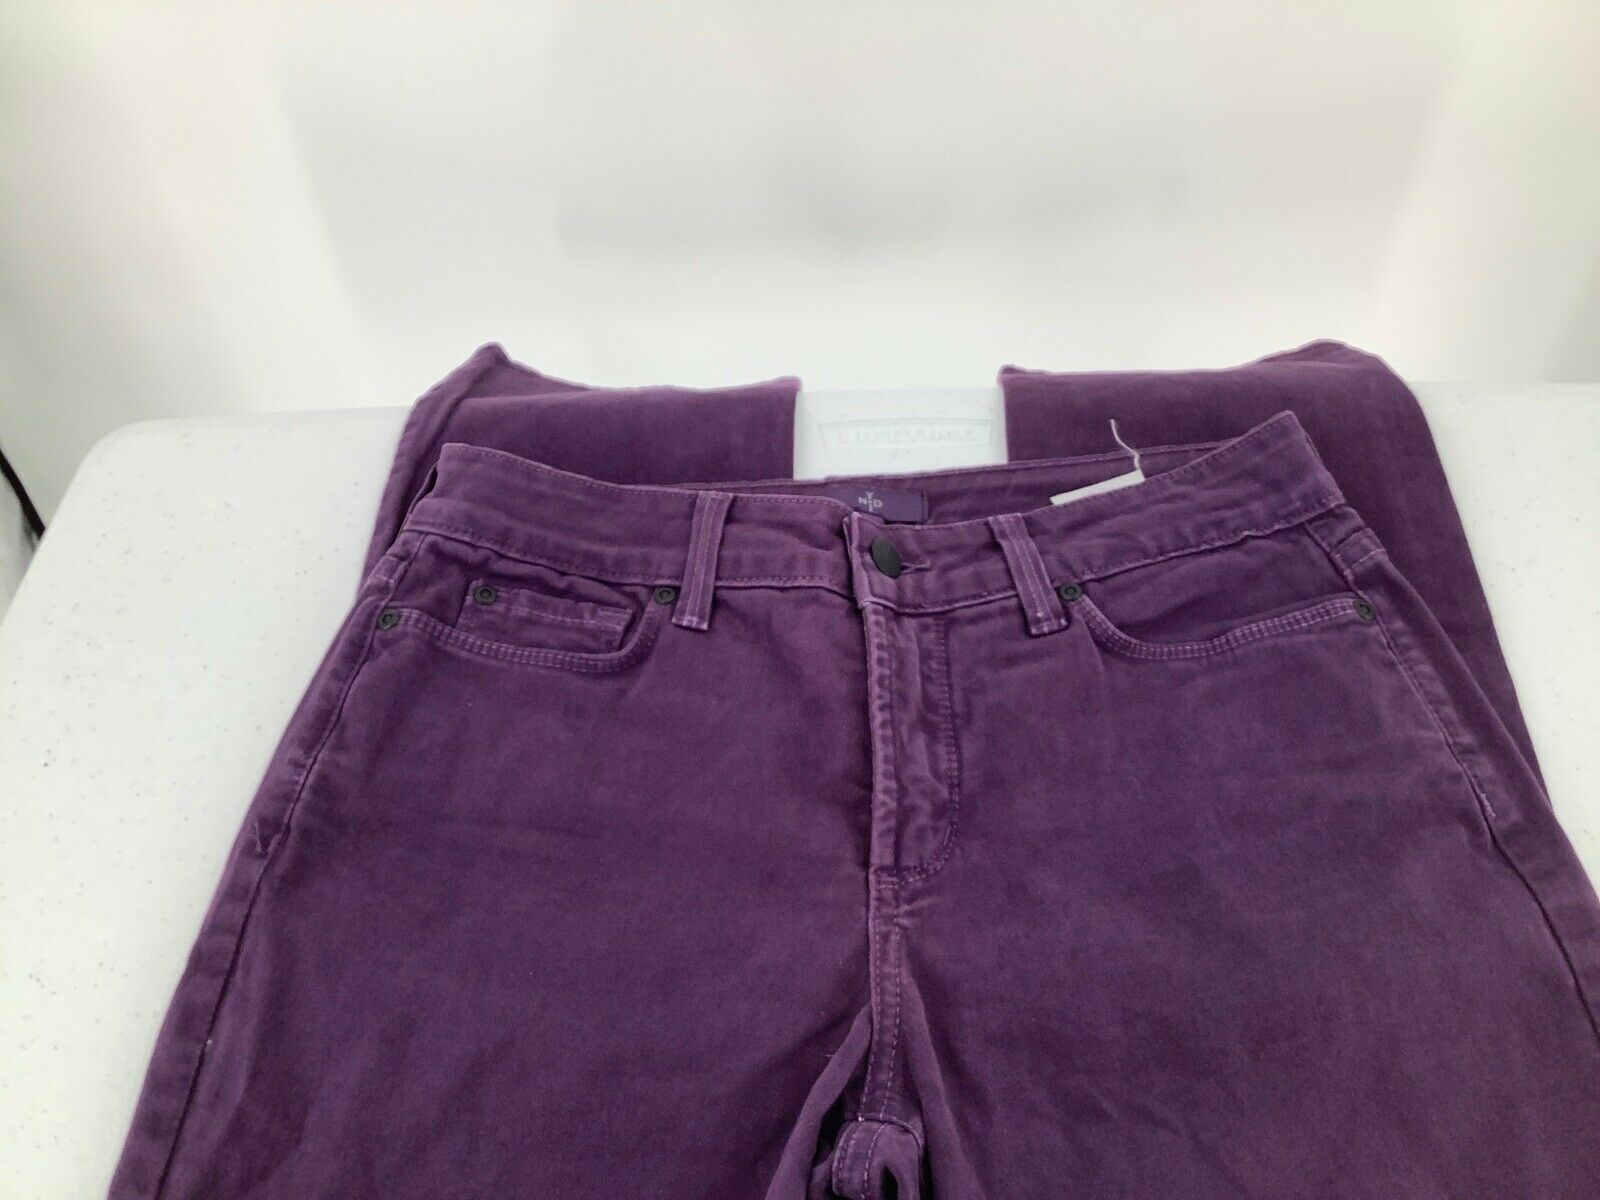 Primary image for Not Your Daughter's Jeans Women 4  Purple Straight Mom's Jeans Pockets Zipper